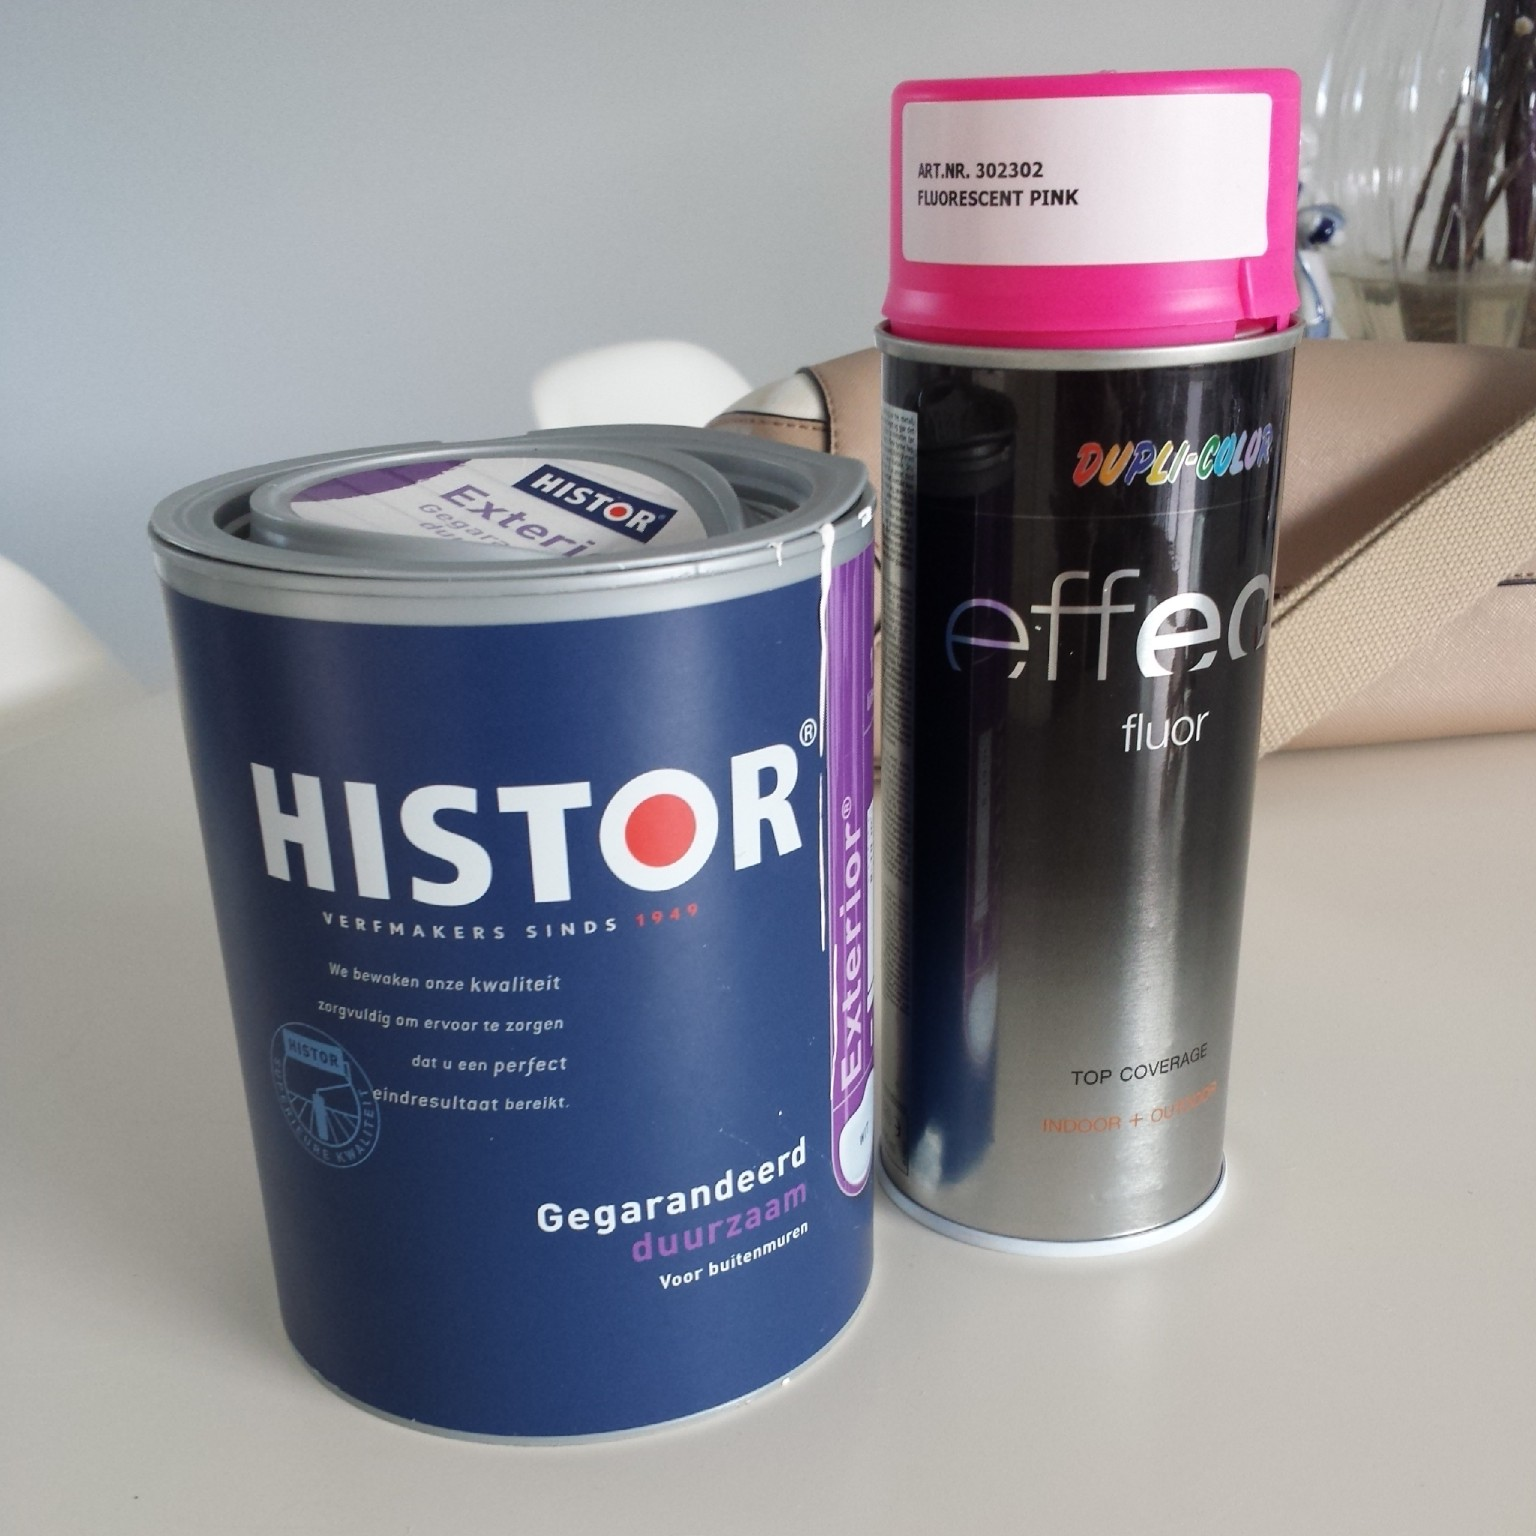 ... white exterior wall paint  and a neon pink spray can